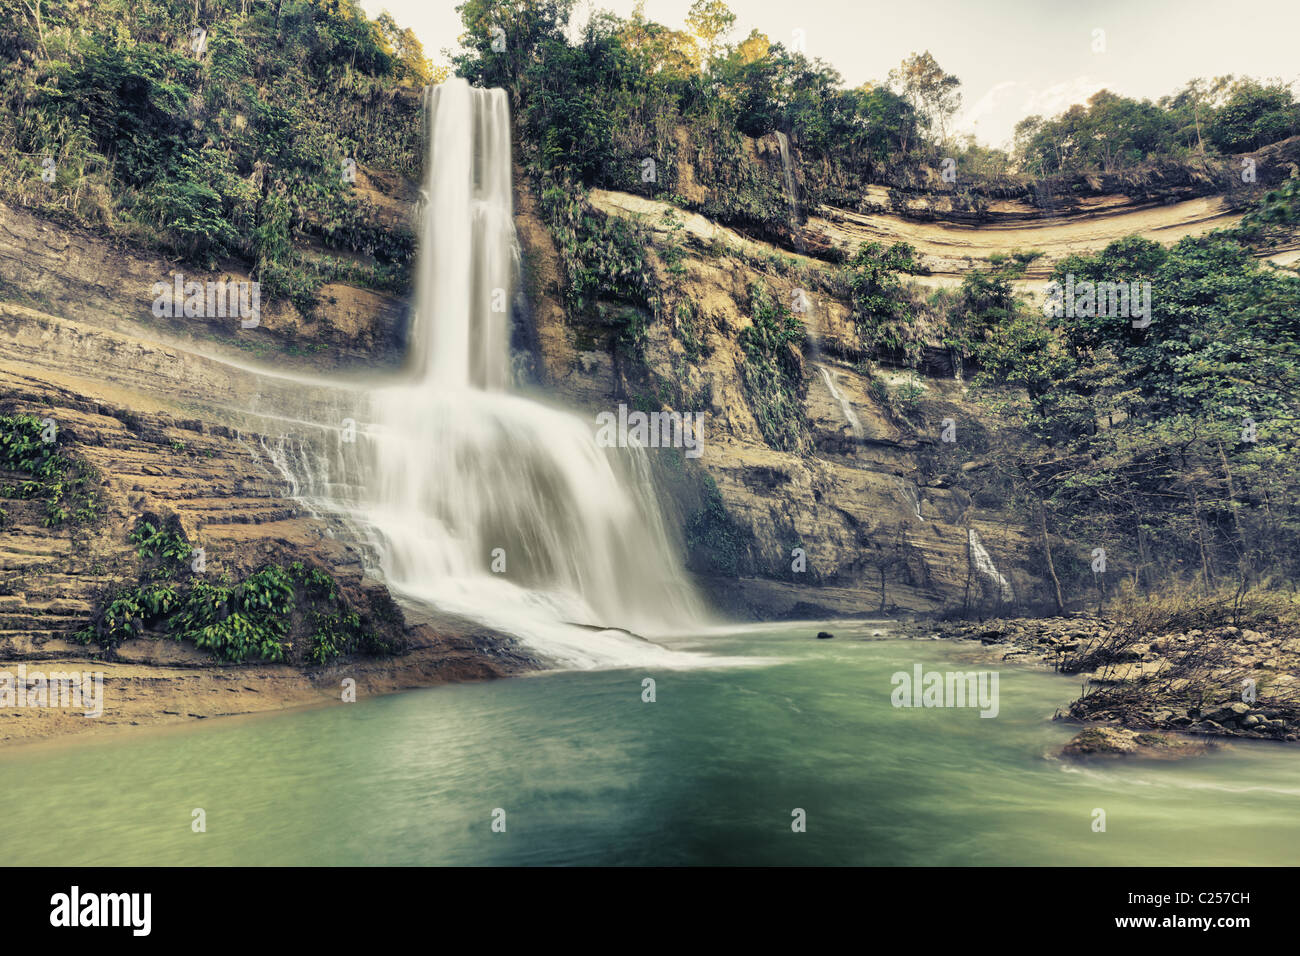 Belle cascade vintage style. Bohol. Philippines Photo Stock